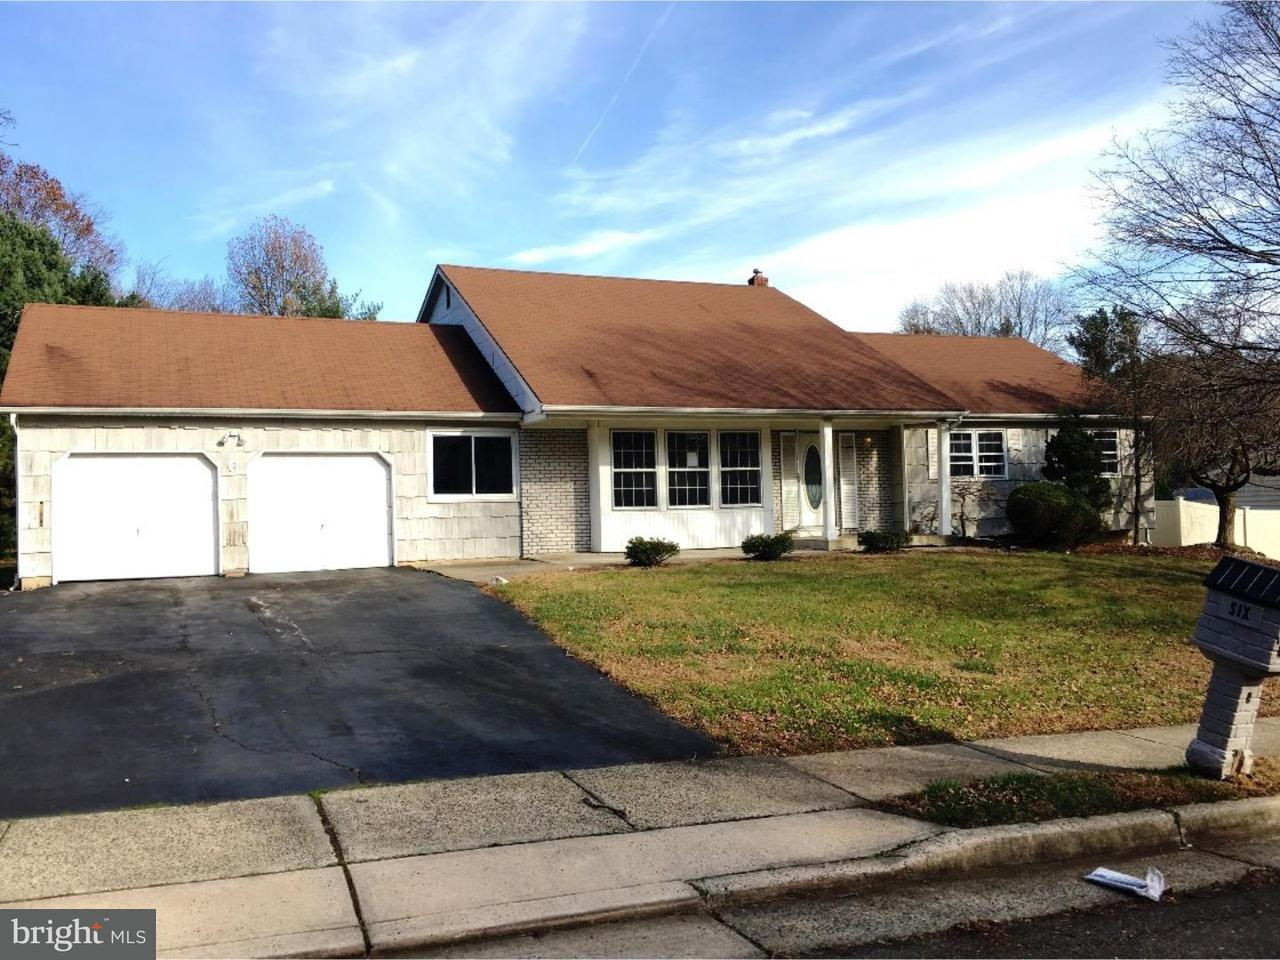 Single Family Home for Sale at 6 BRUCE Road Morganville, New Jersey 07751 United States